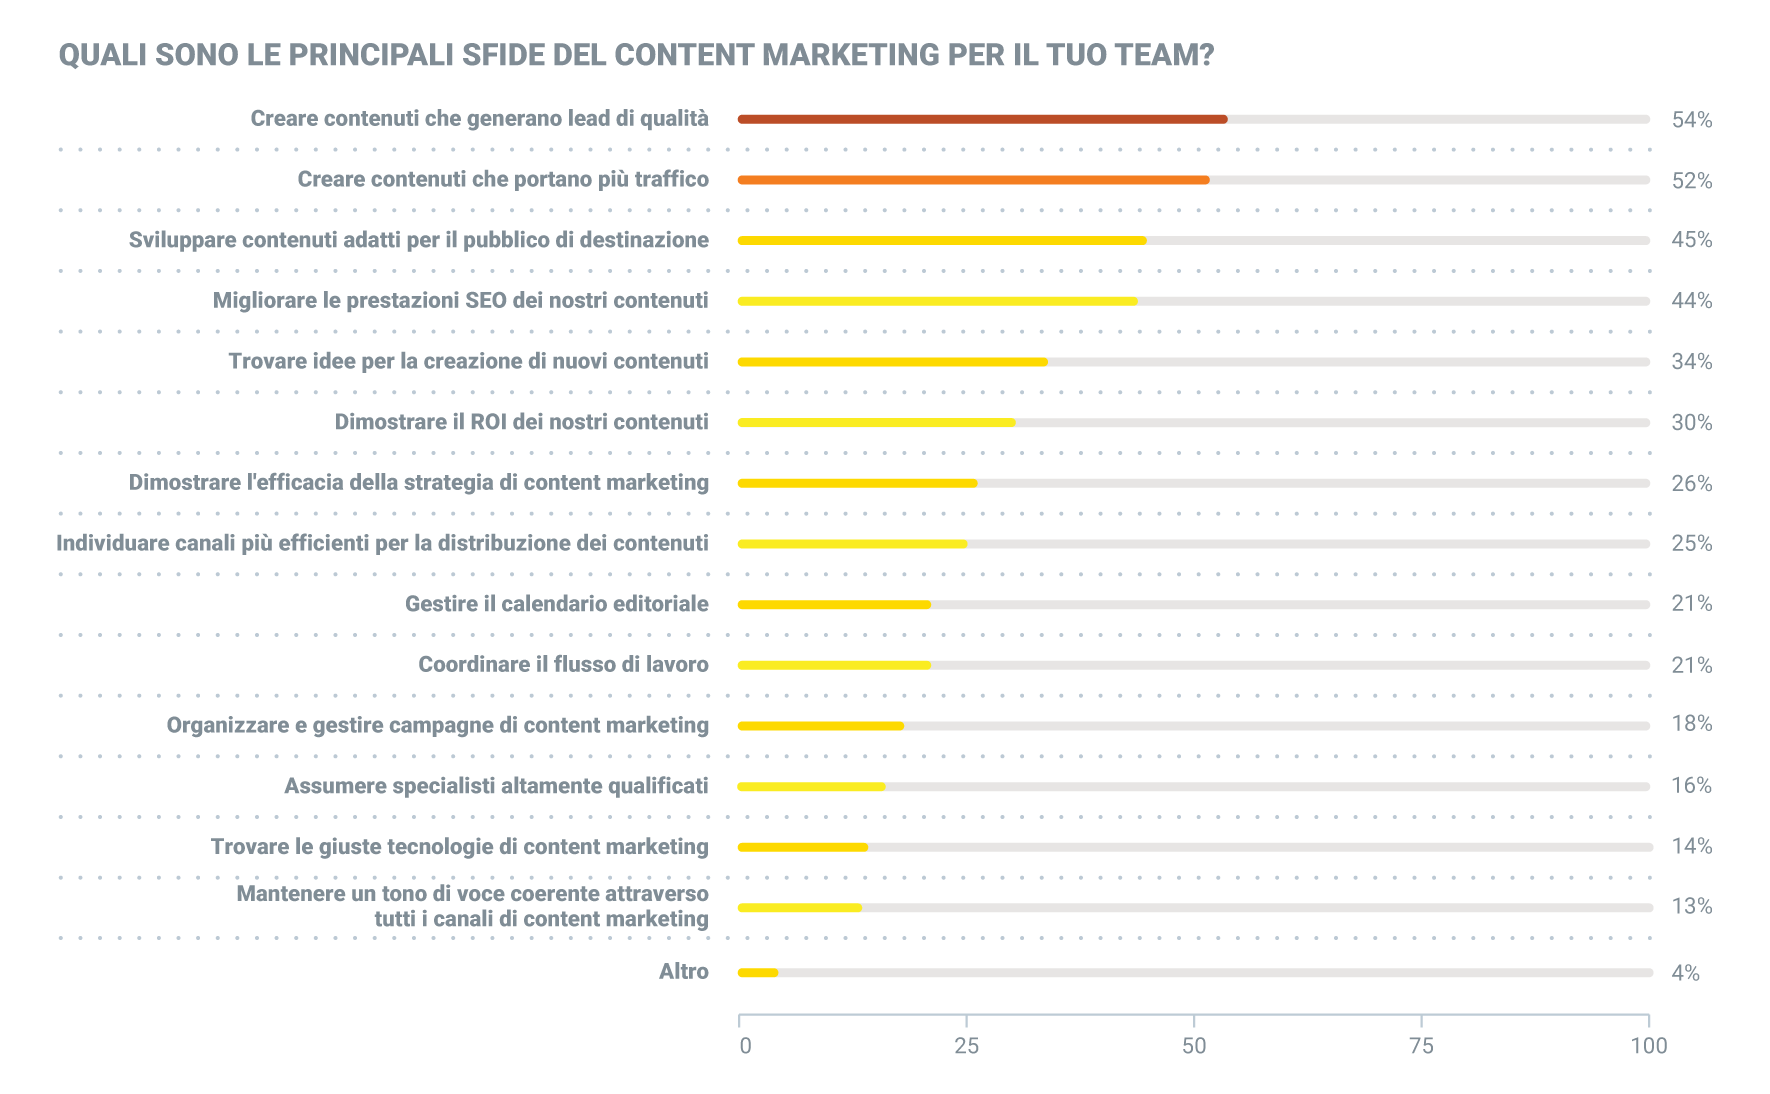 quali sono le principali sfide del content marketing